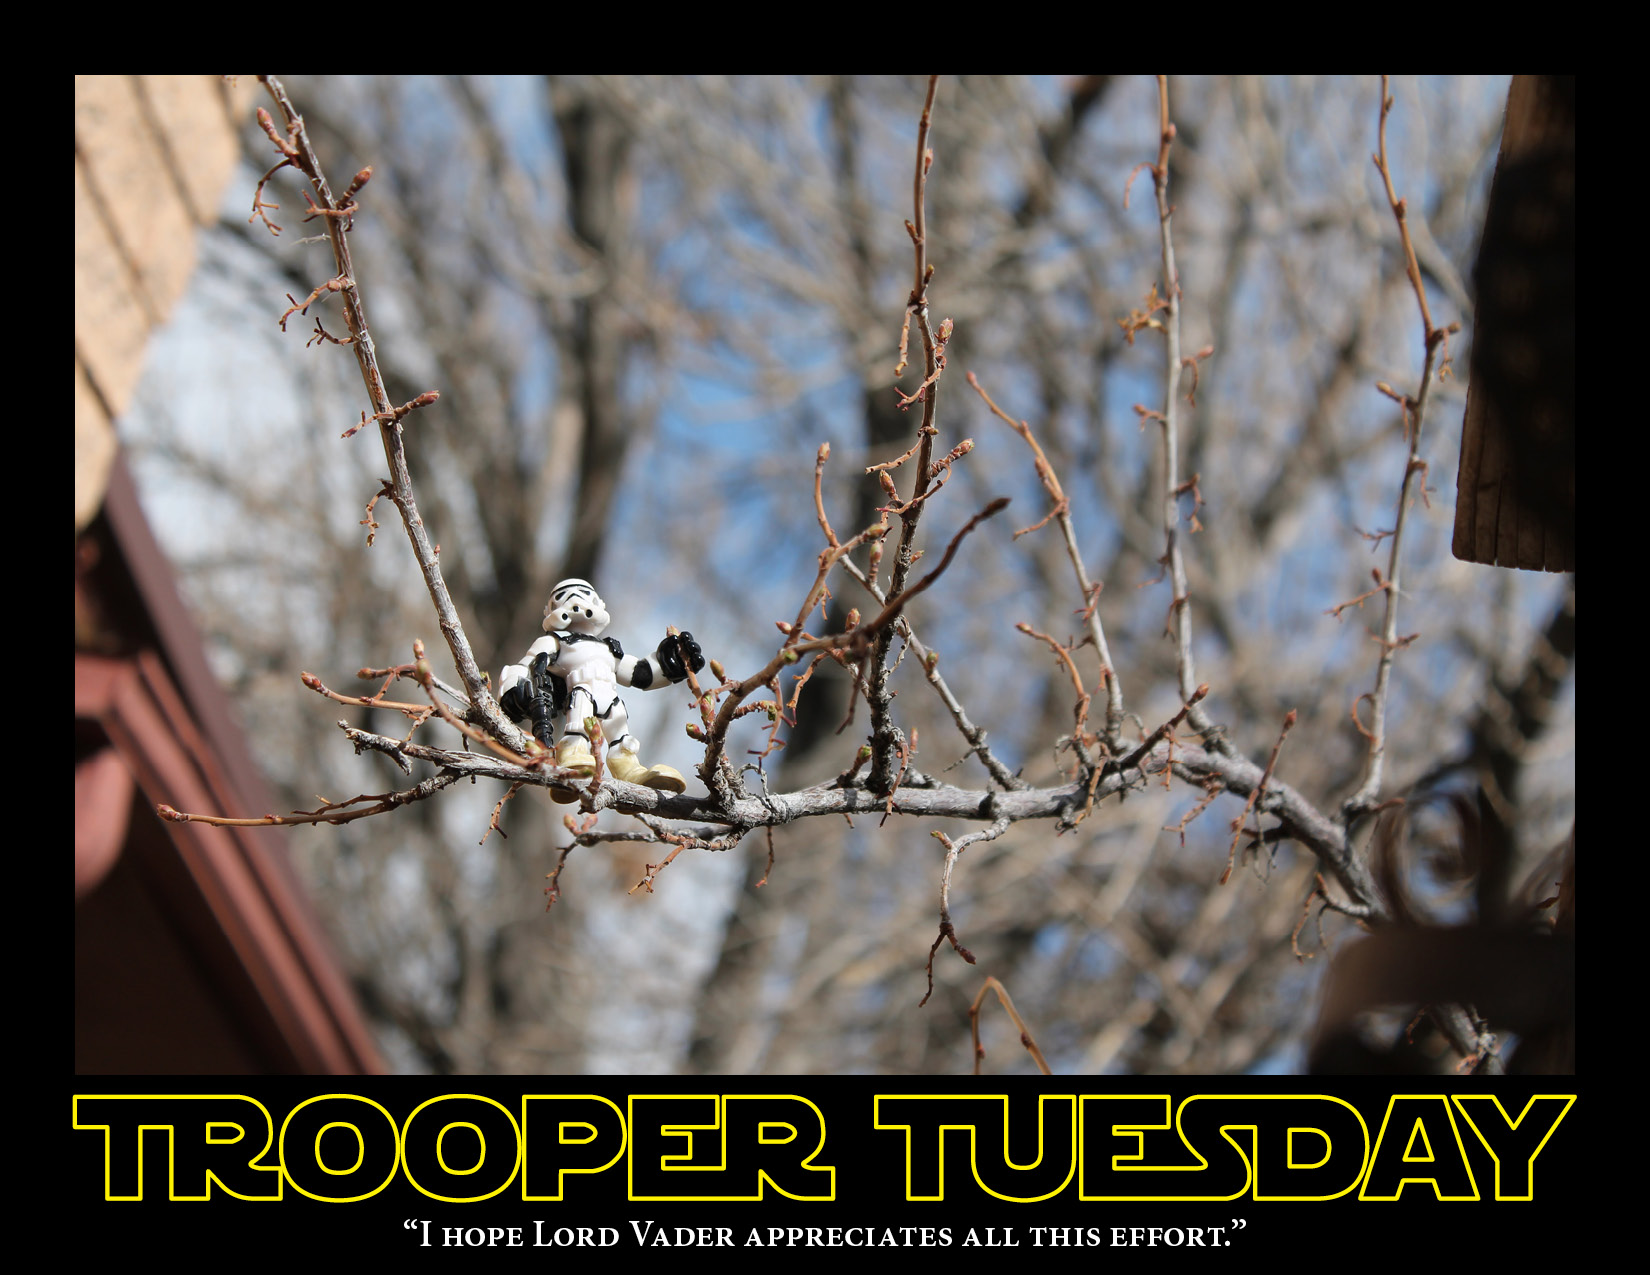 Sandy, the Sandtrooper stands out on a tree branch to get a better view.